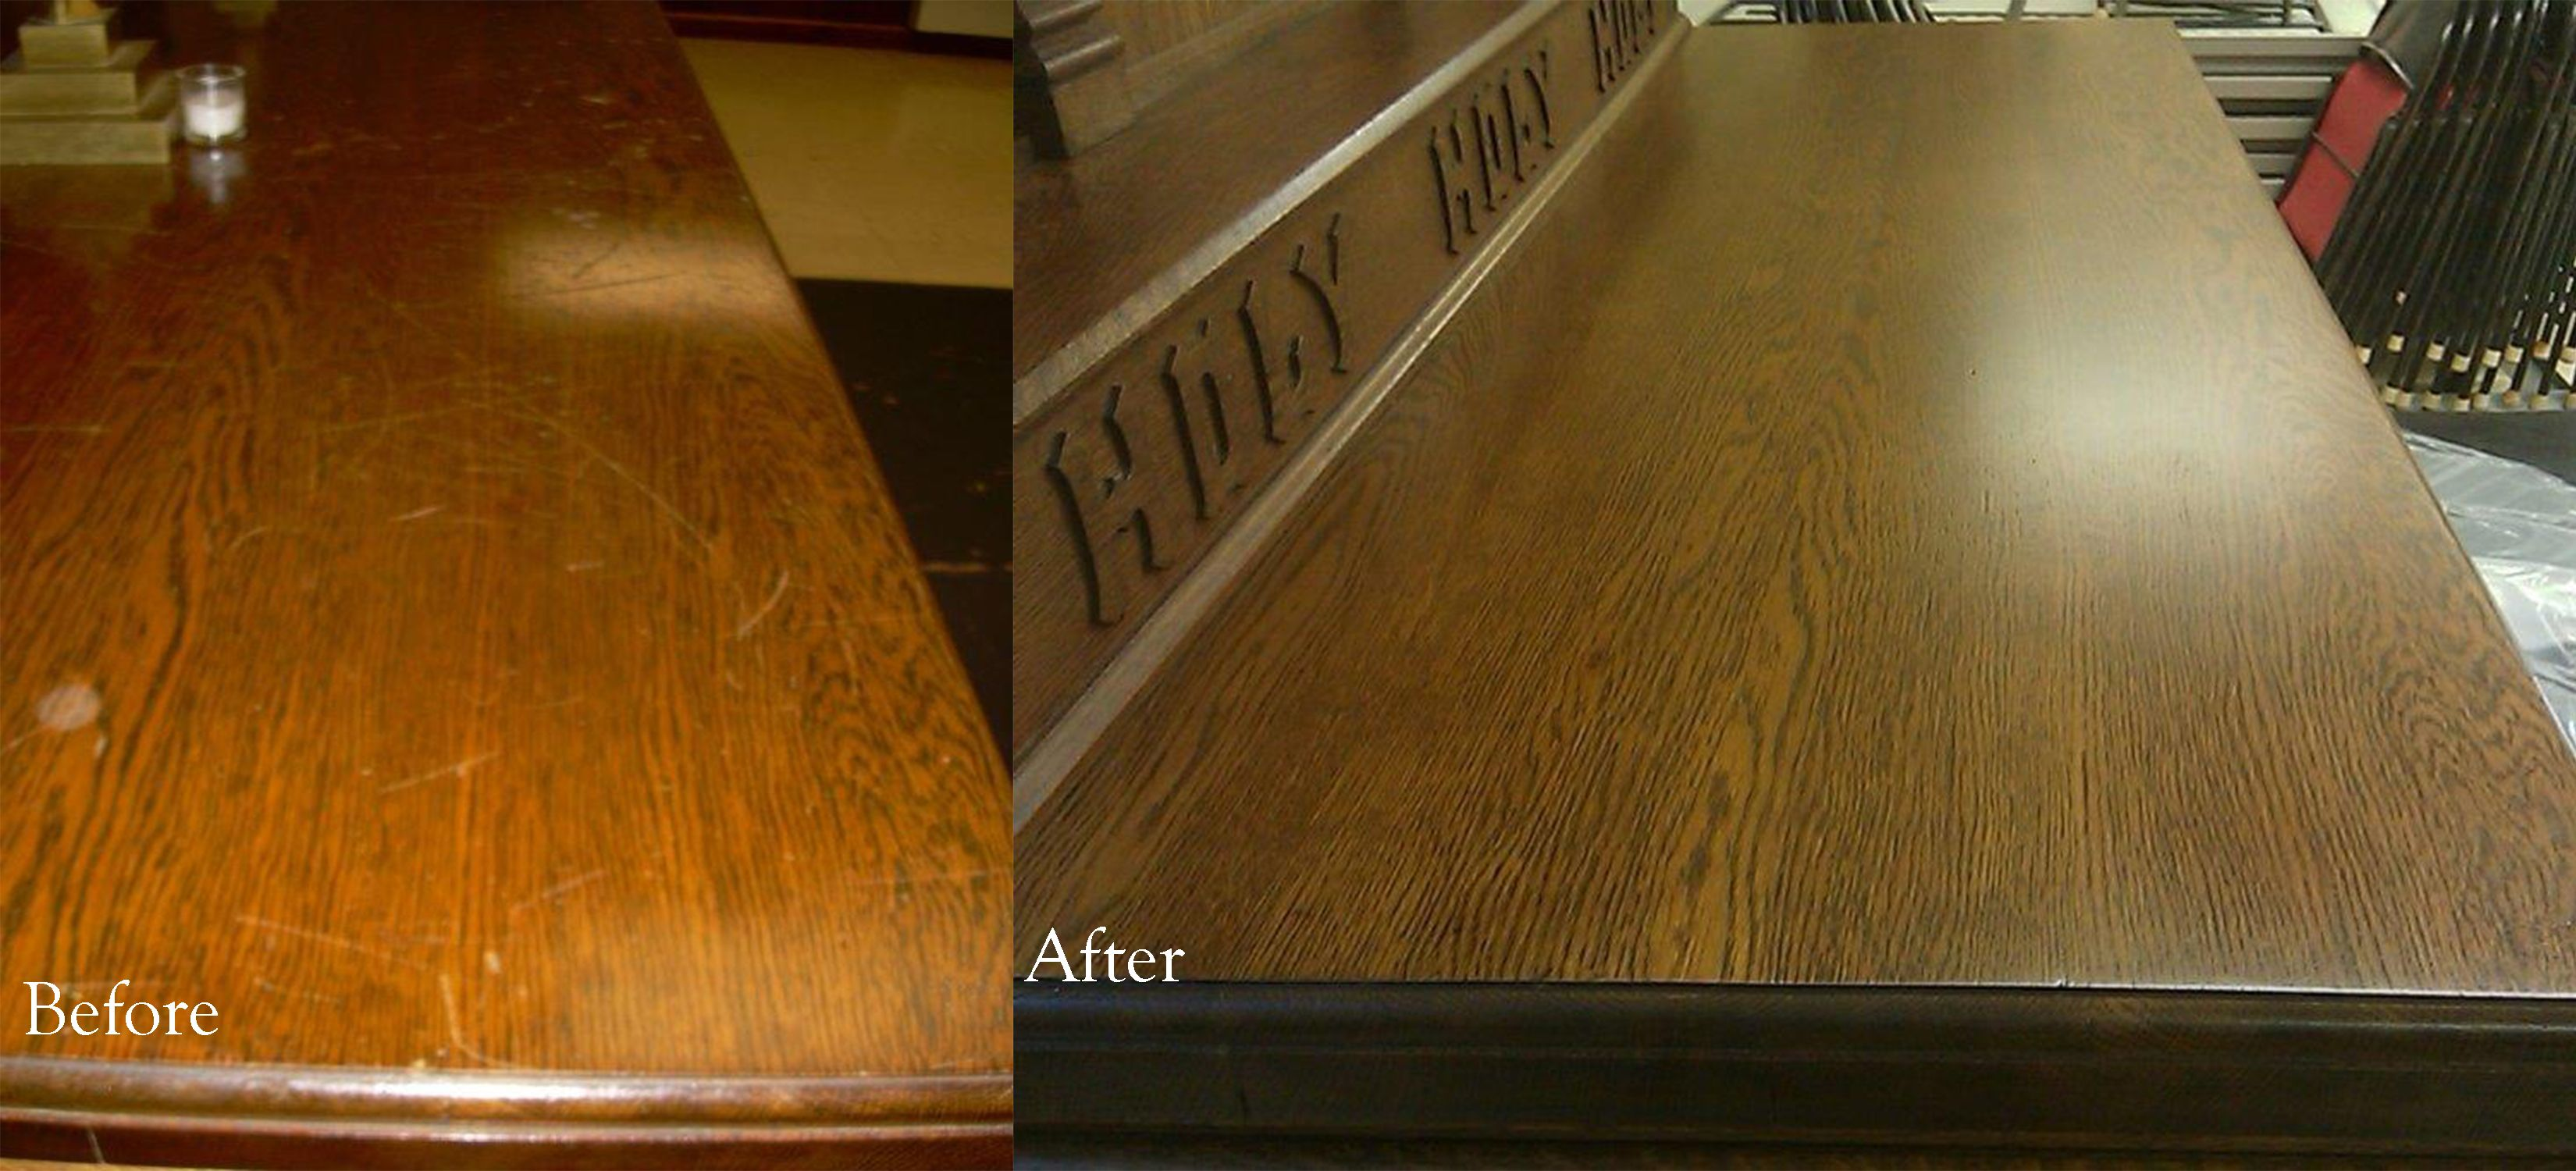 Before And After Photos From The Good Shepherd In Pearl River, NY. Work  Performed